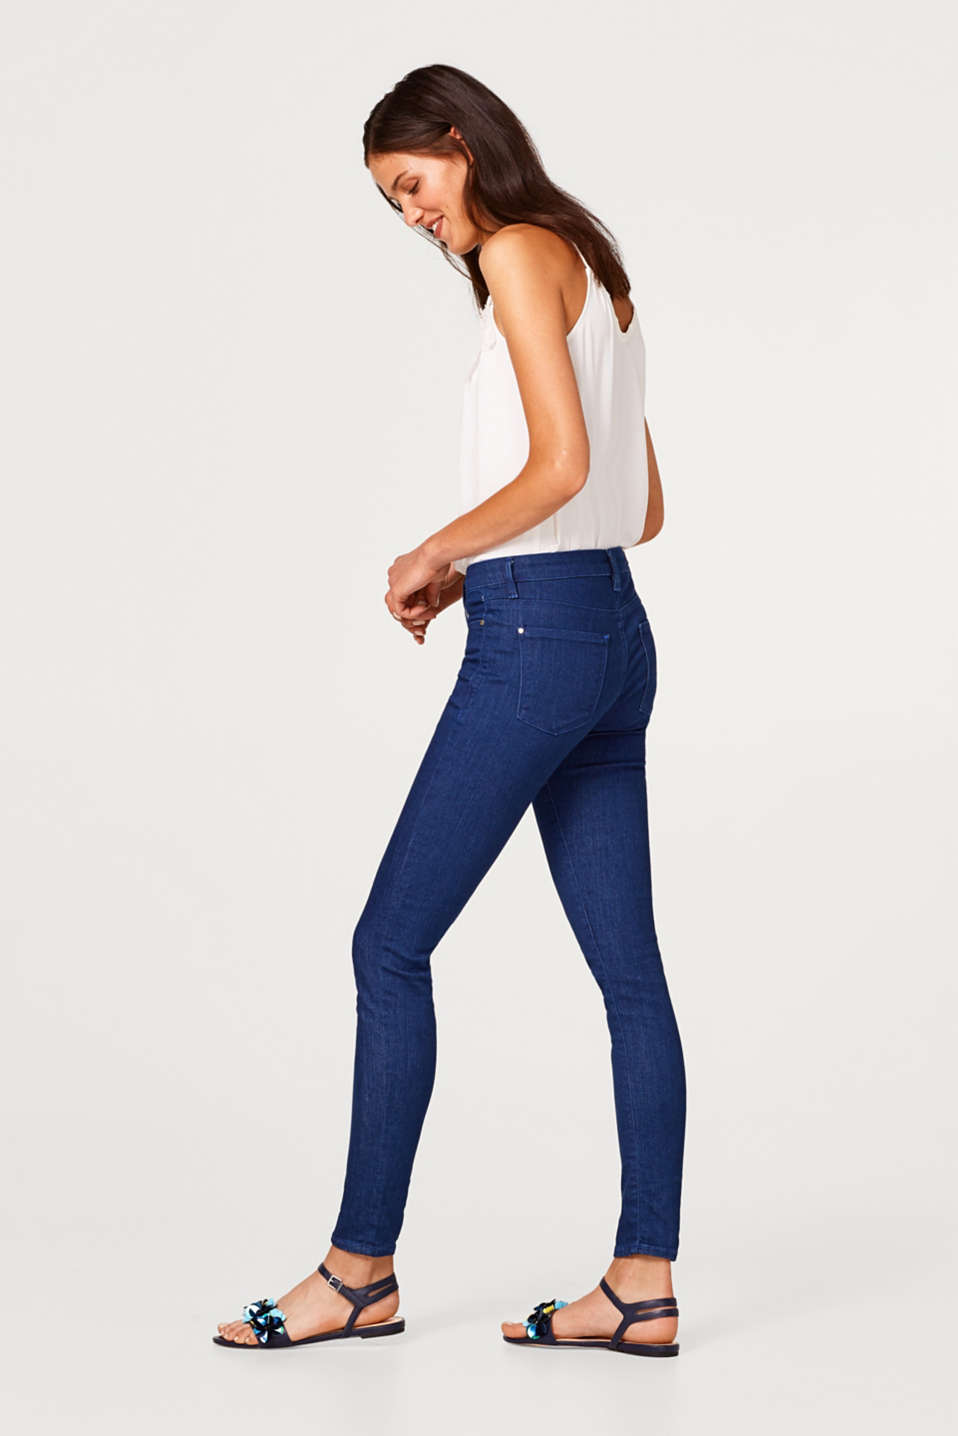 Esprit - Stretch jeans in a slim five-pocket fit